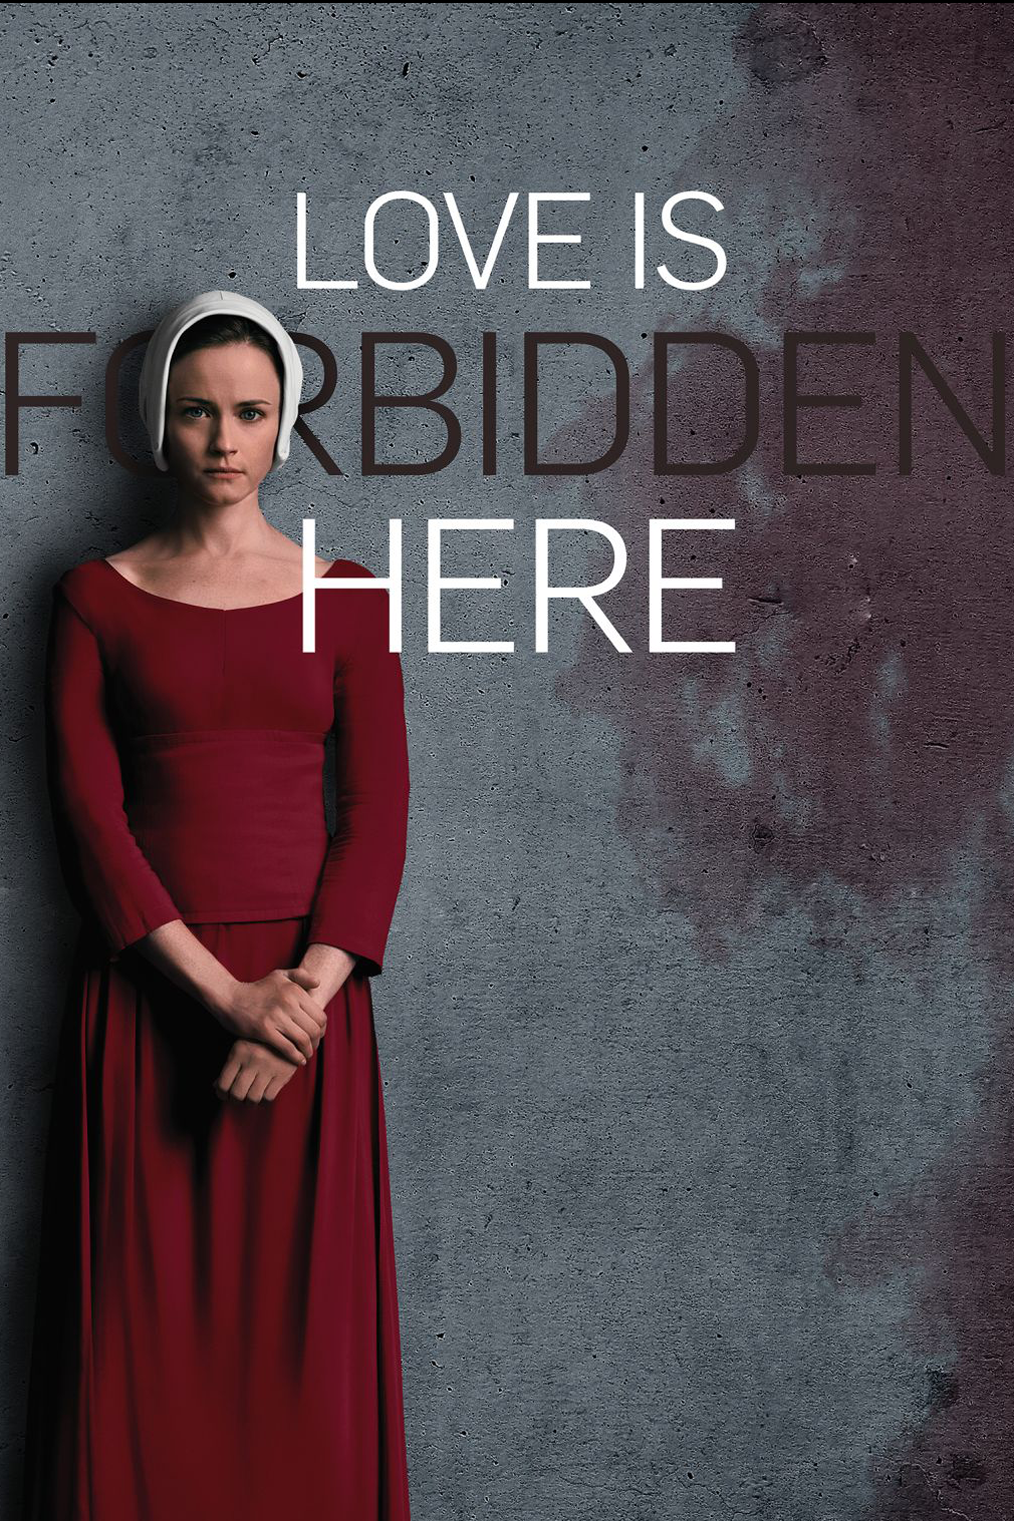 The.Handmaids.Tale.S01E01.720p.HDTV.x264-MTB - Torrent - DCRGDizi.com